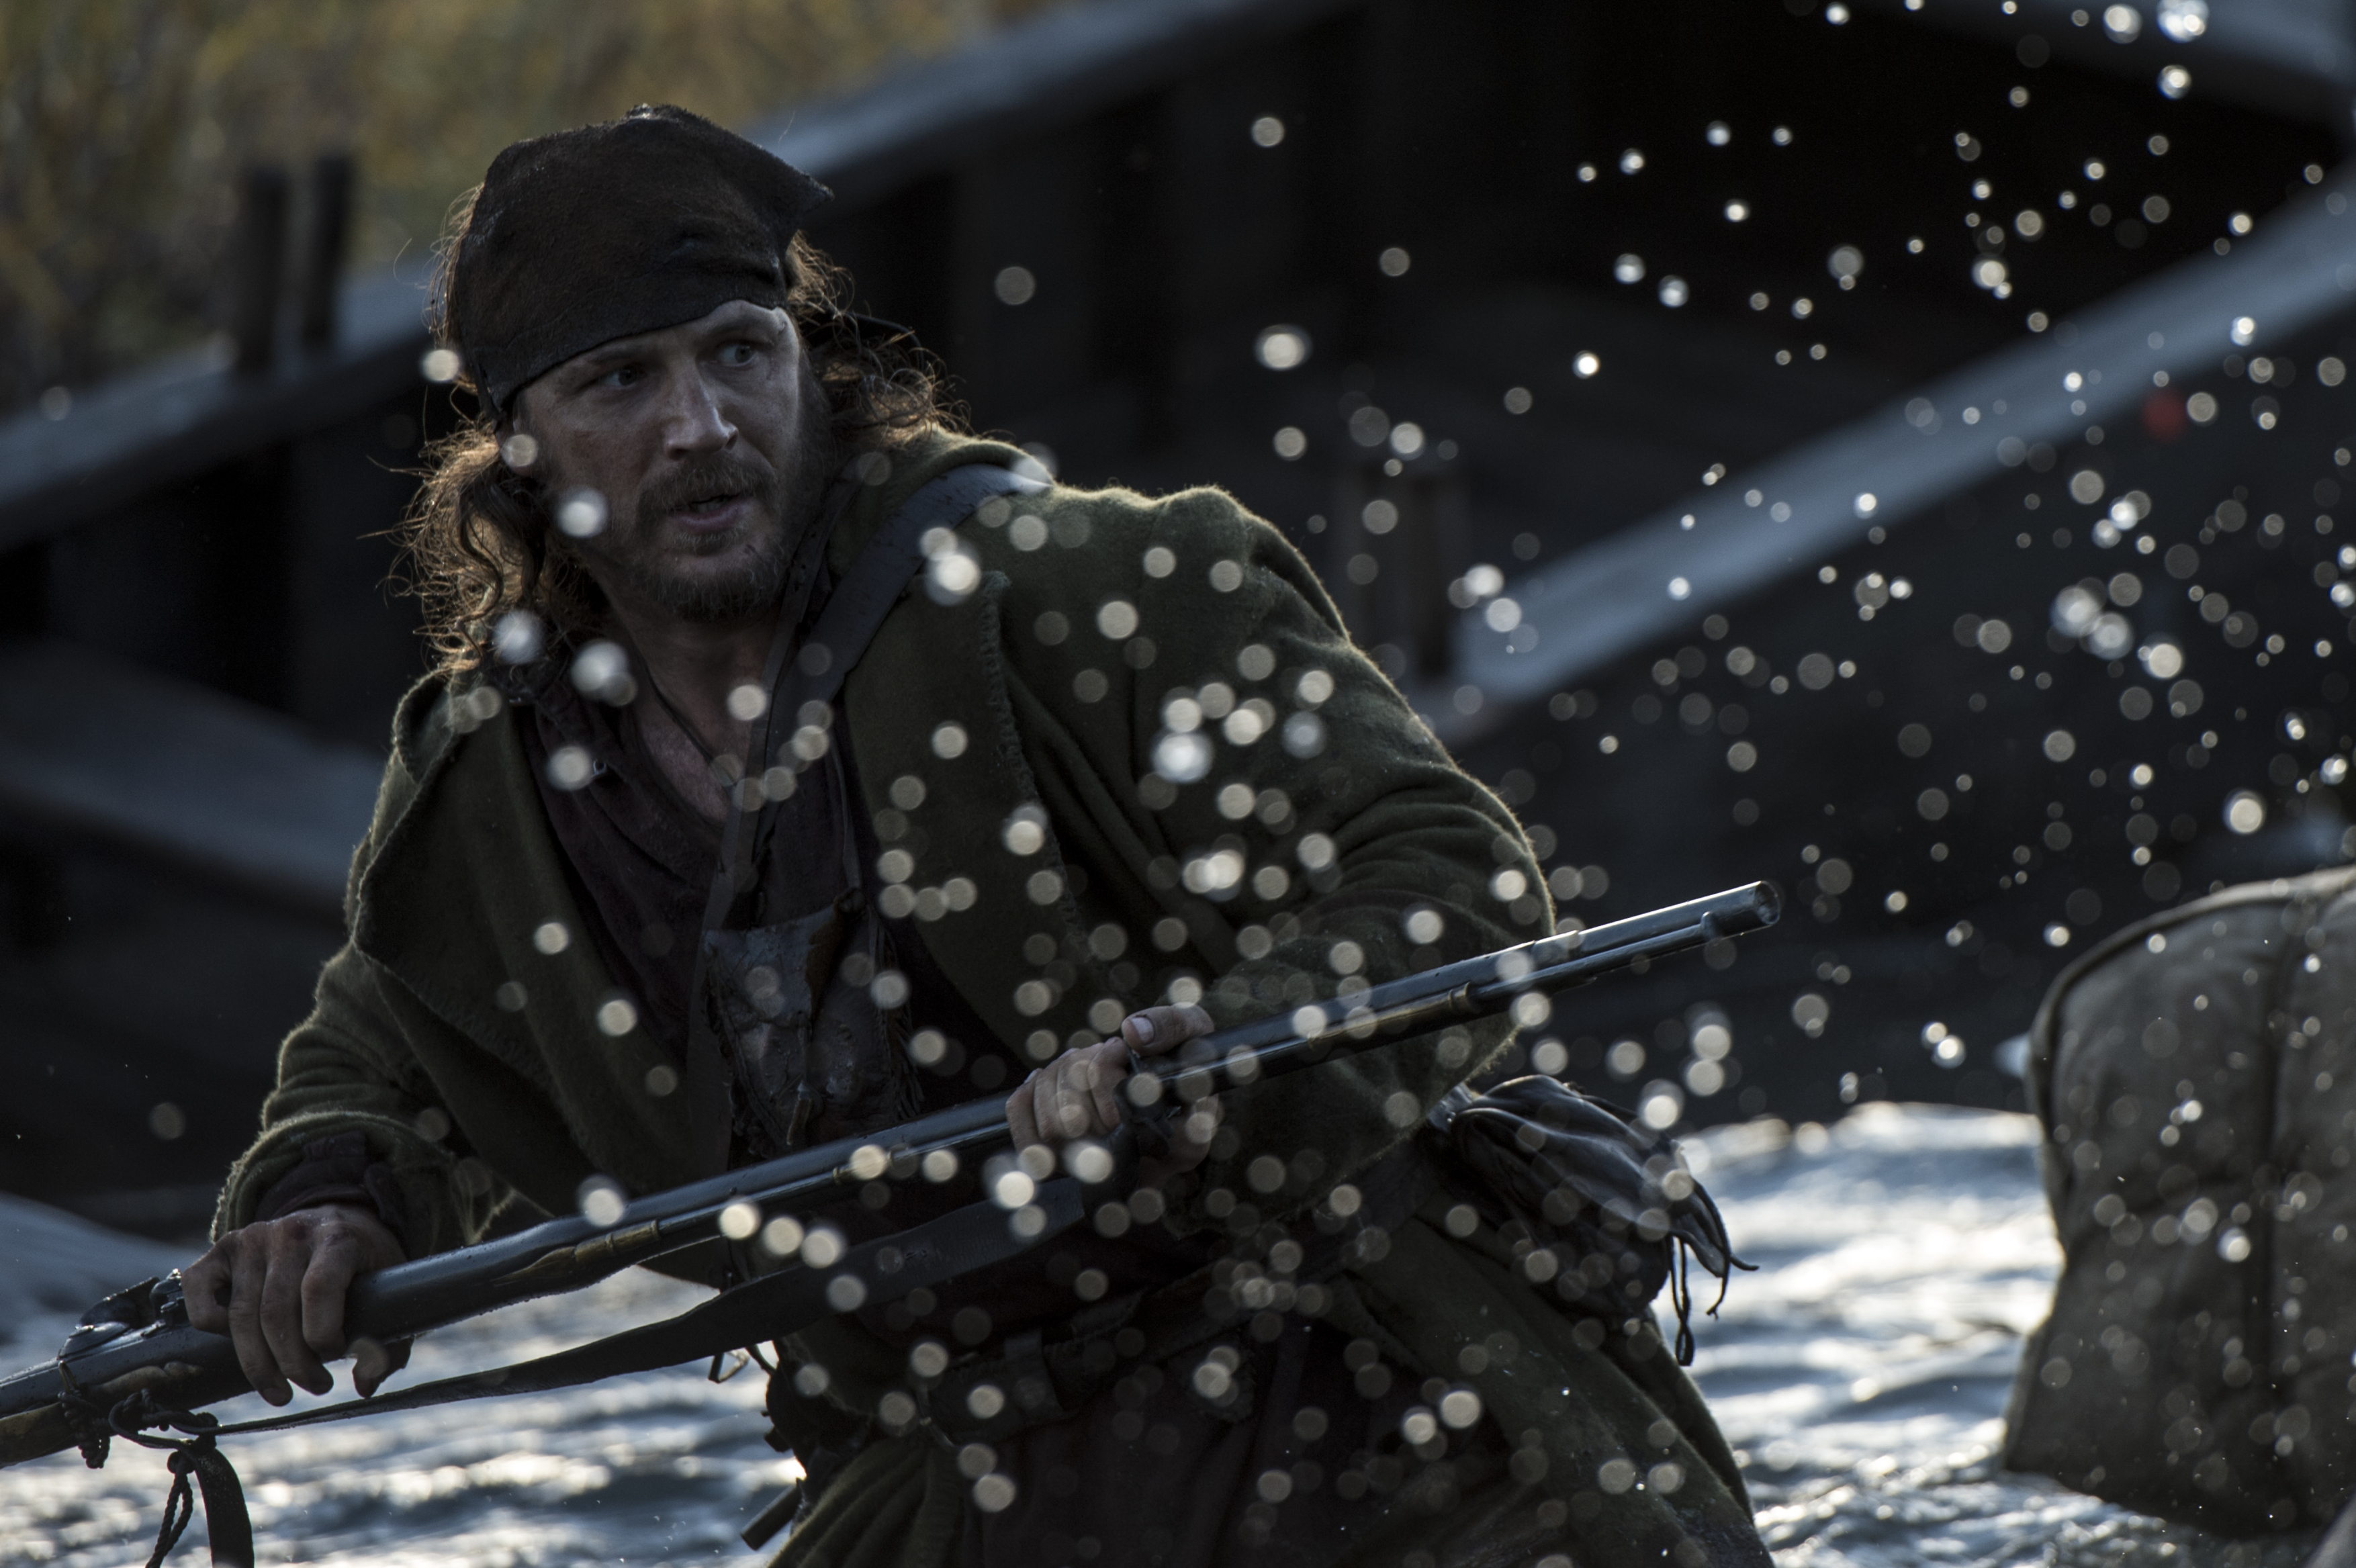 The Revenant Hd Wallpaper Background Image 3508x2335 Id676784